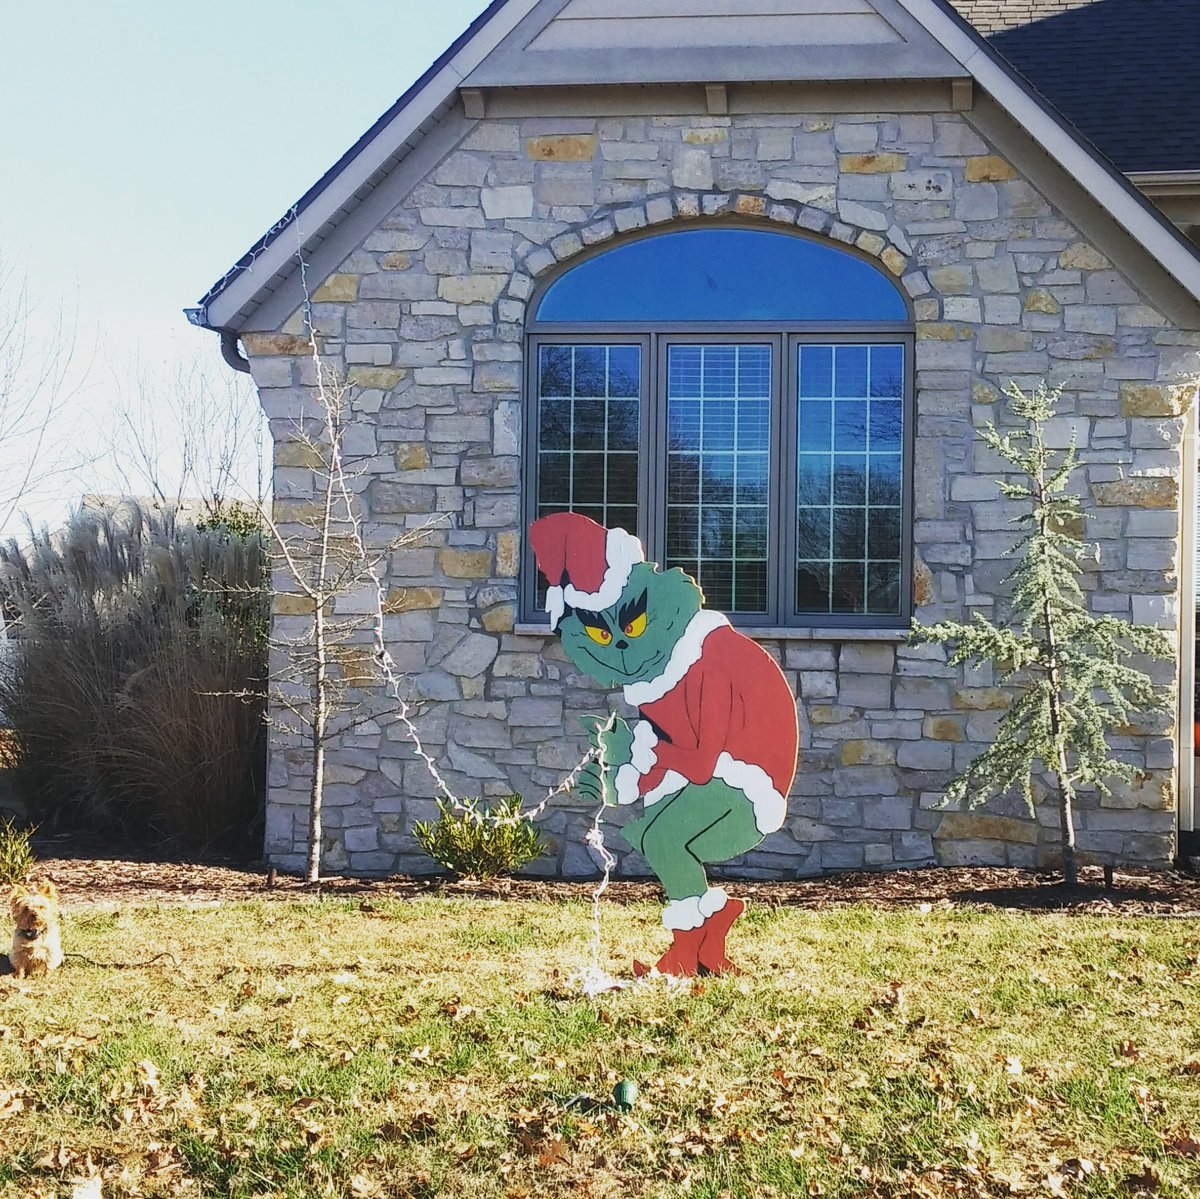 Captivating The Grinch Is Stealing The Lights Right Off My House U0026 My Secret Service  Dog Is Just Sitting There! #grinch Https://t.co/AUkzmR0MbF